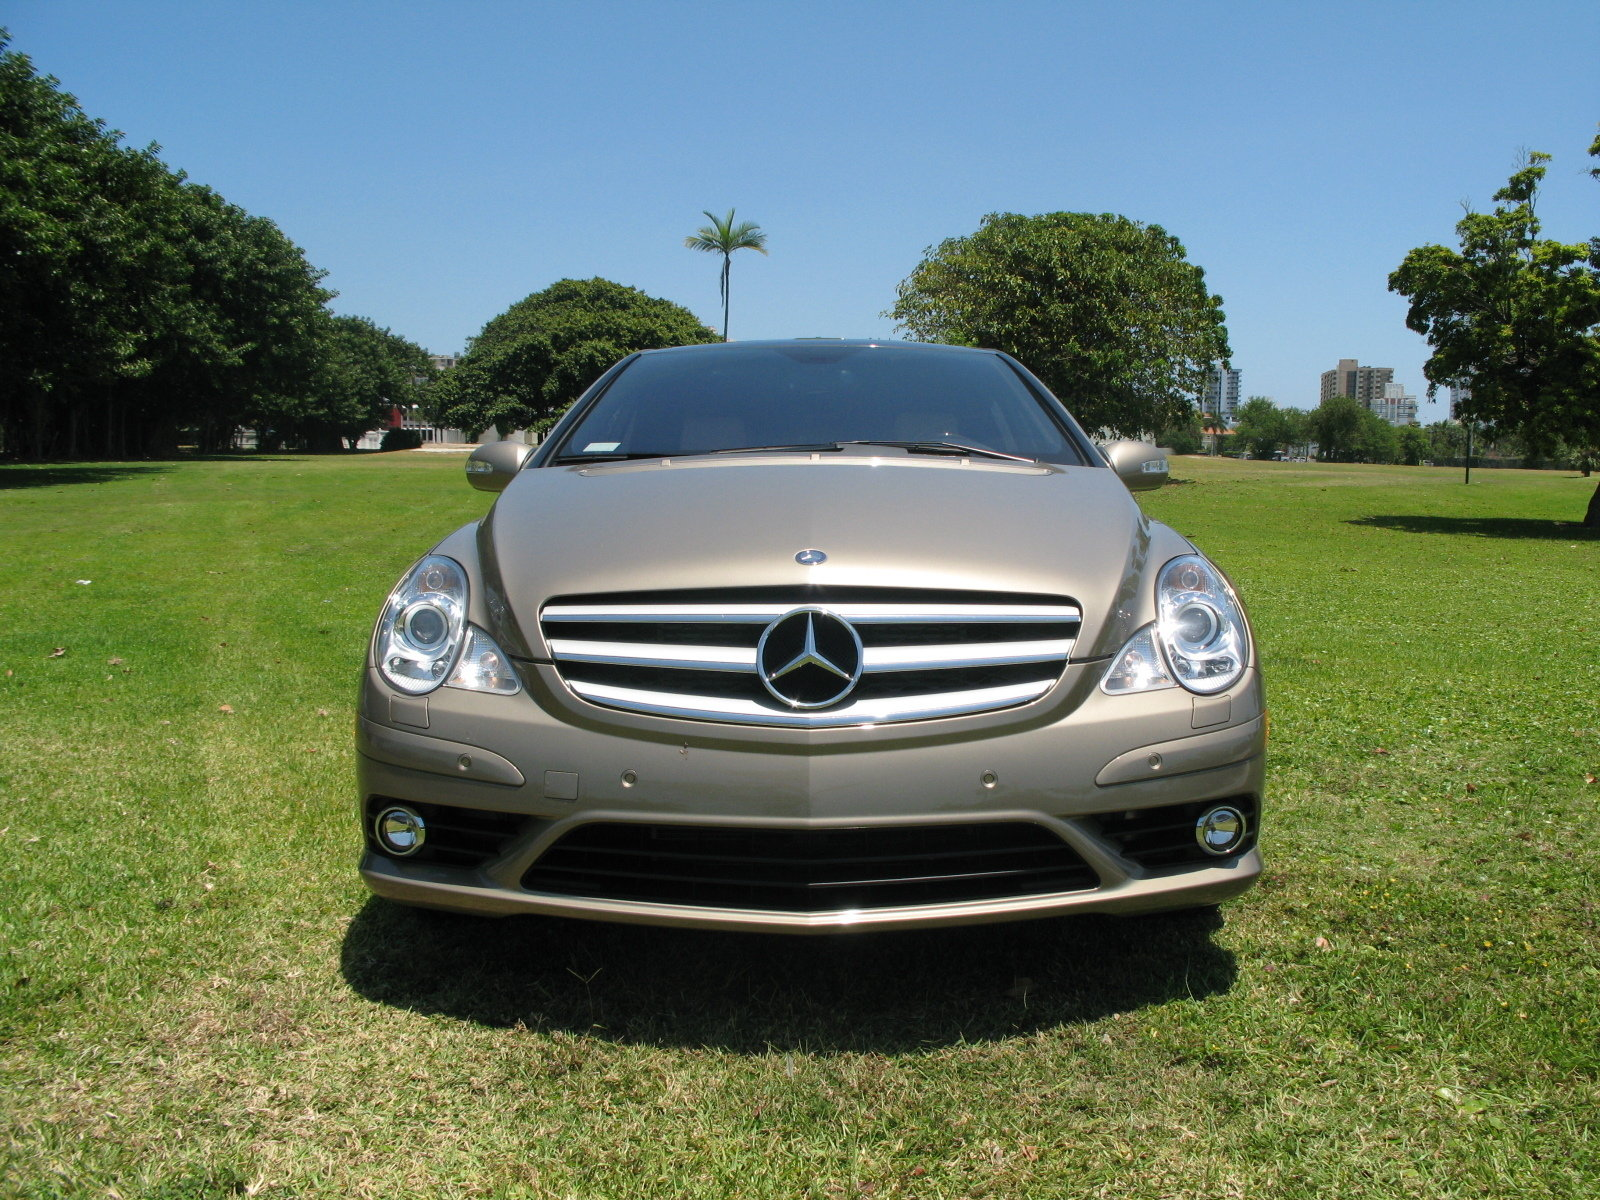 2008 mercedes r320 cdi 4 matic picture 248580 car review top speed. Black Bedroom Furniture Sets. Home Design Ideas